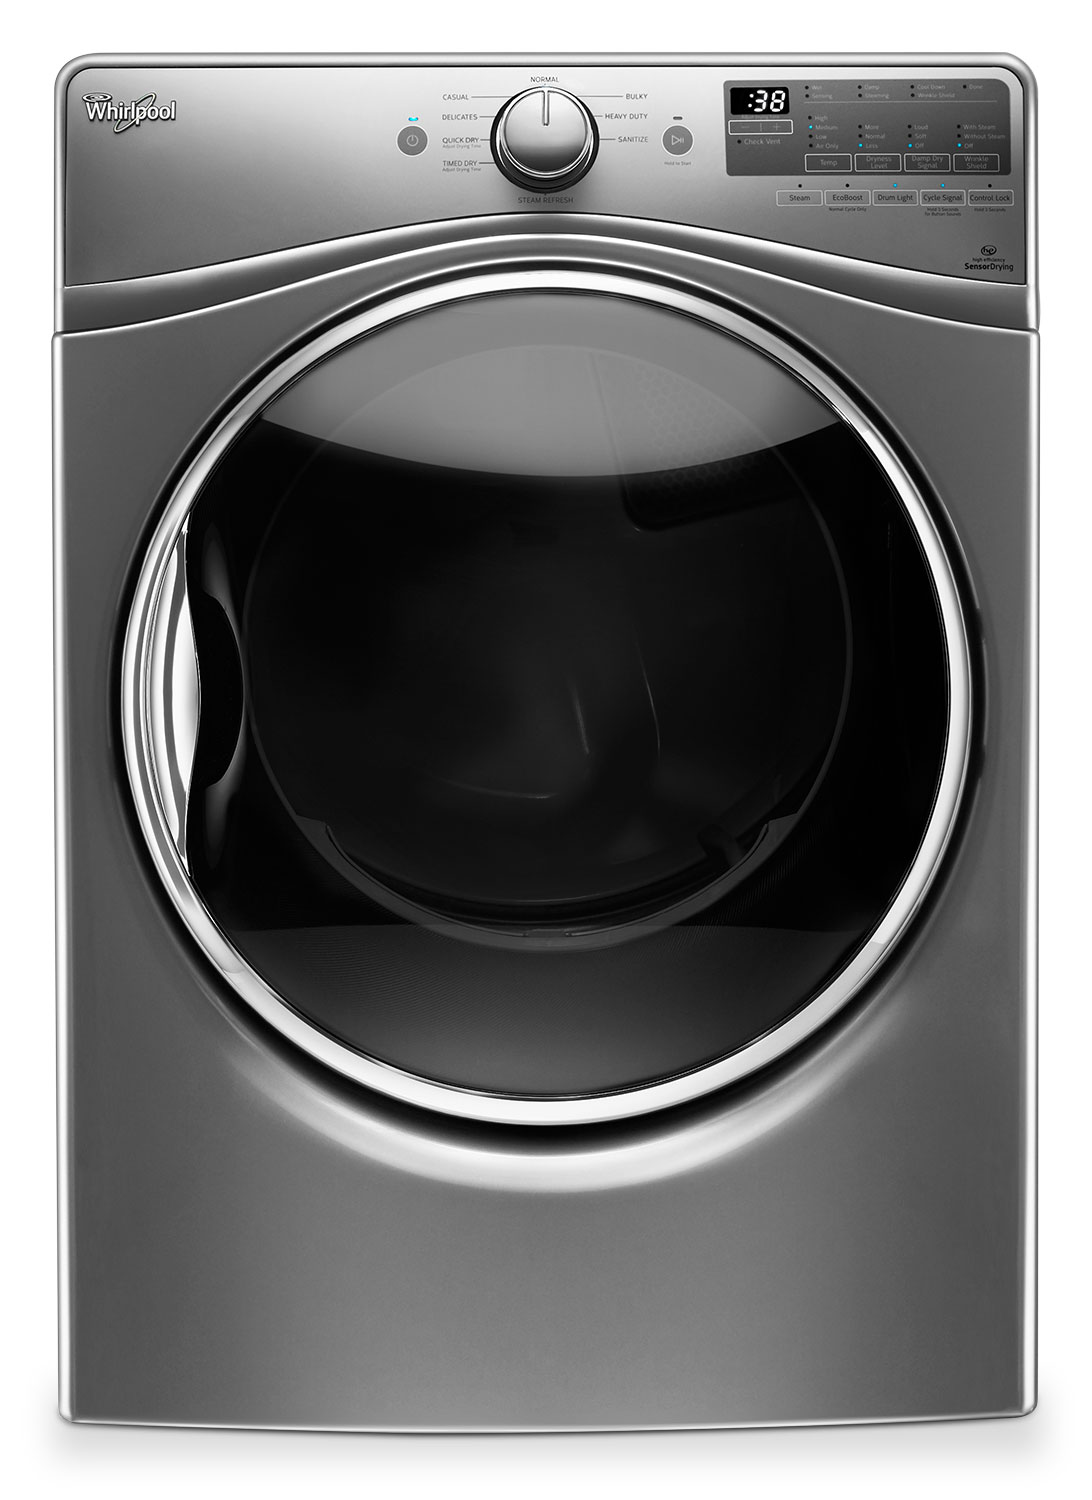 Washers and Dryers - Whirlpool Chrome Shadow Gas Dryer (7.4 Cu. Ft.) - WGD90HEFC